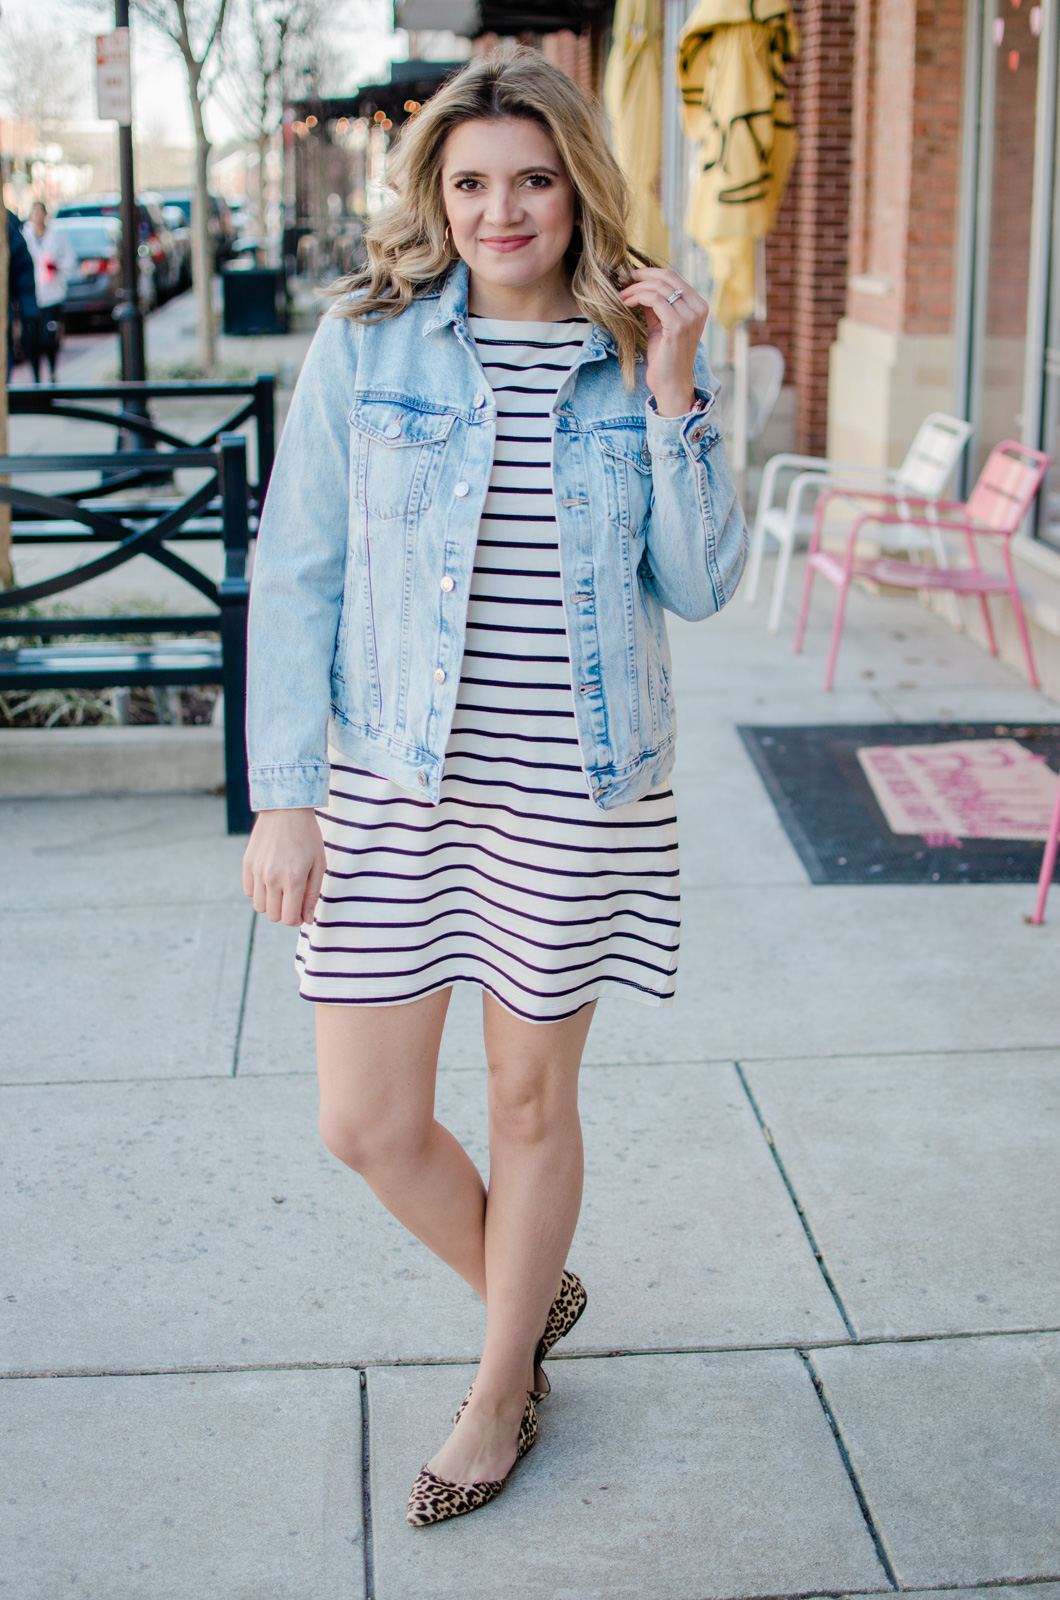 d21bbf2179f striped dress outfit spring | By Lauren M